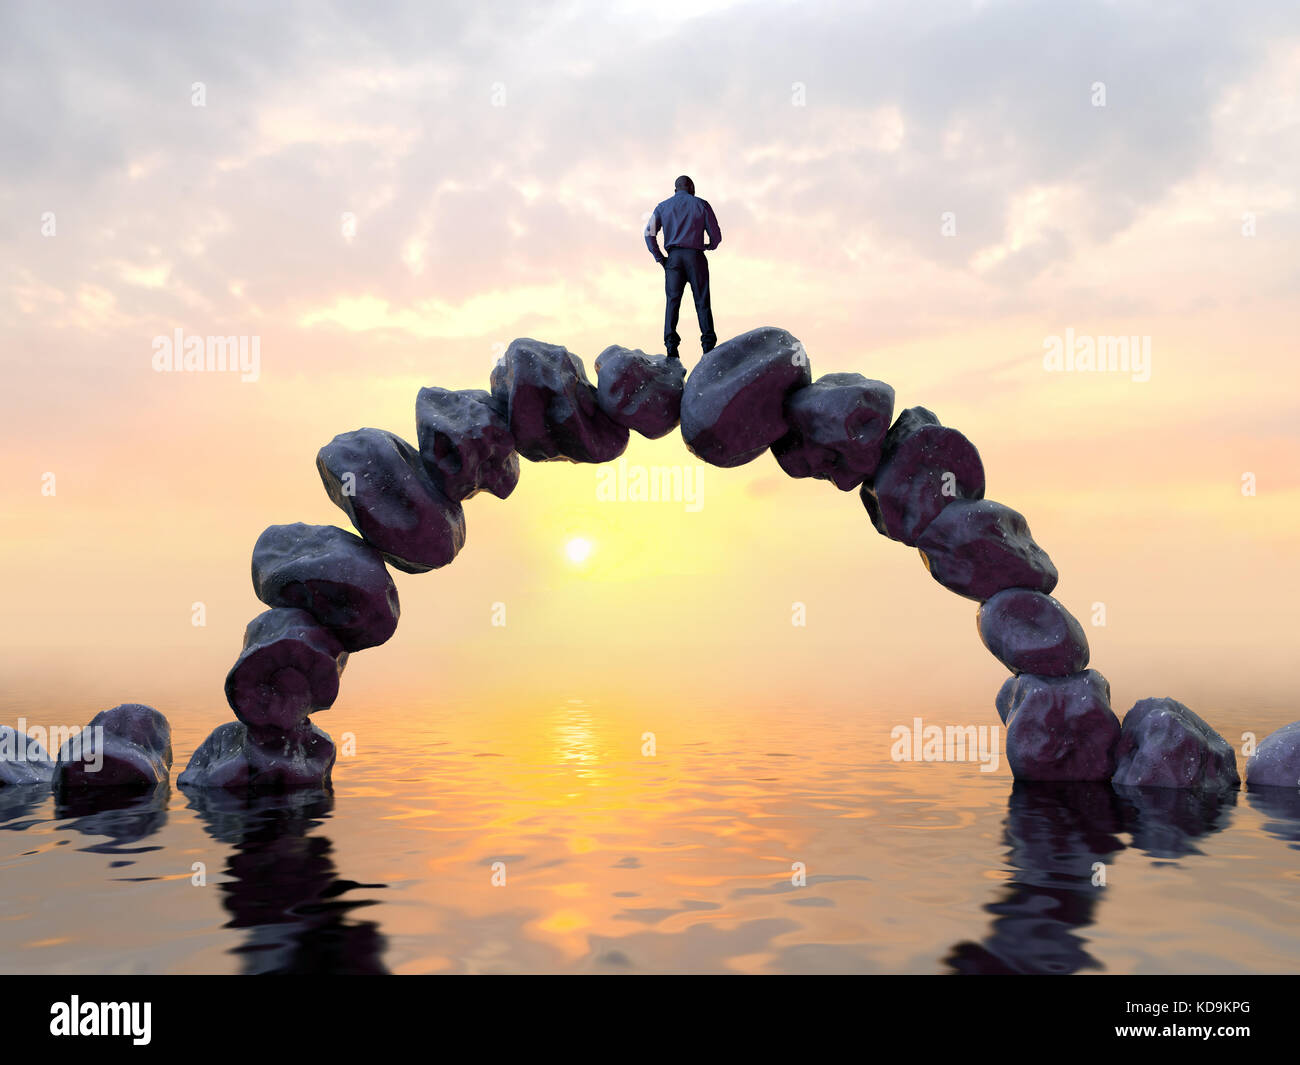 man stands on top of a stone bridge - Stock Image